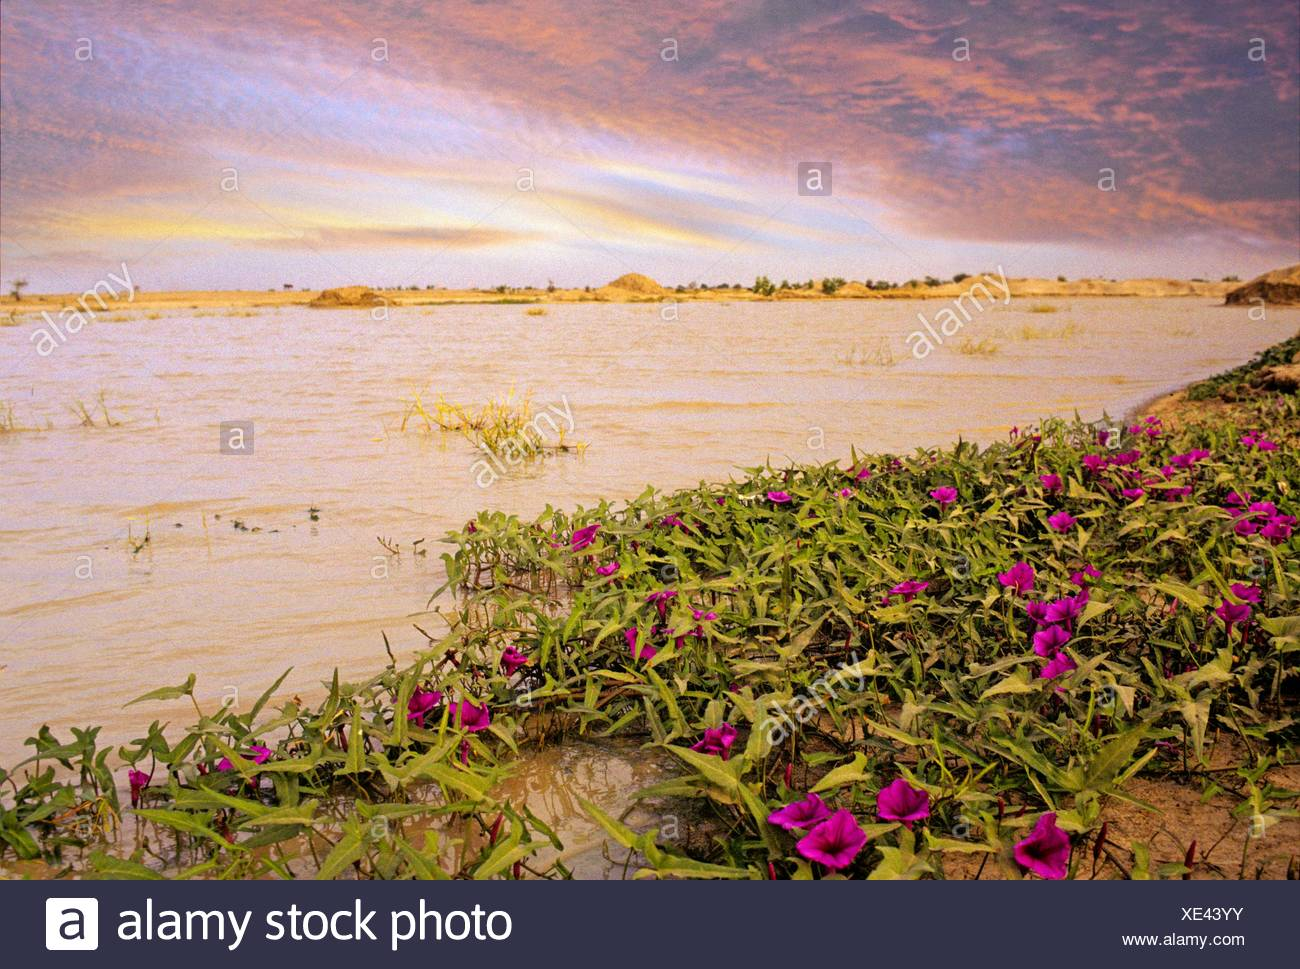 lake, Chad, Central Africa. - Stock Image